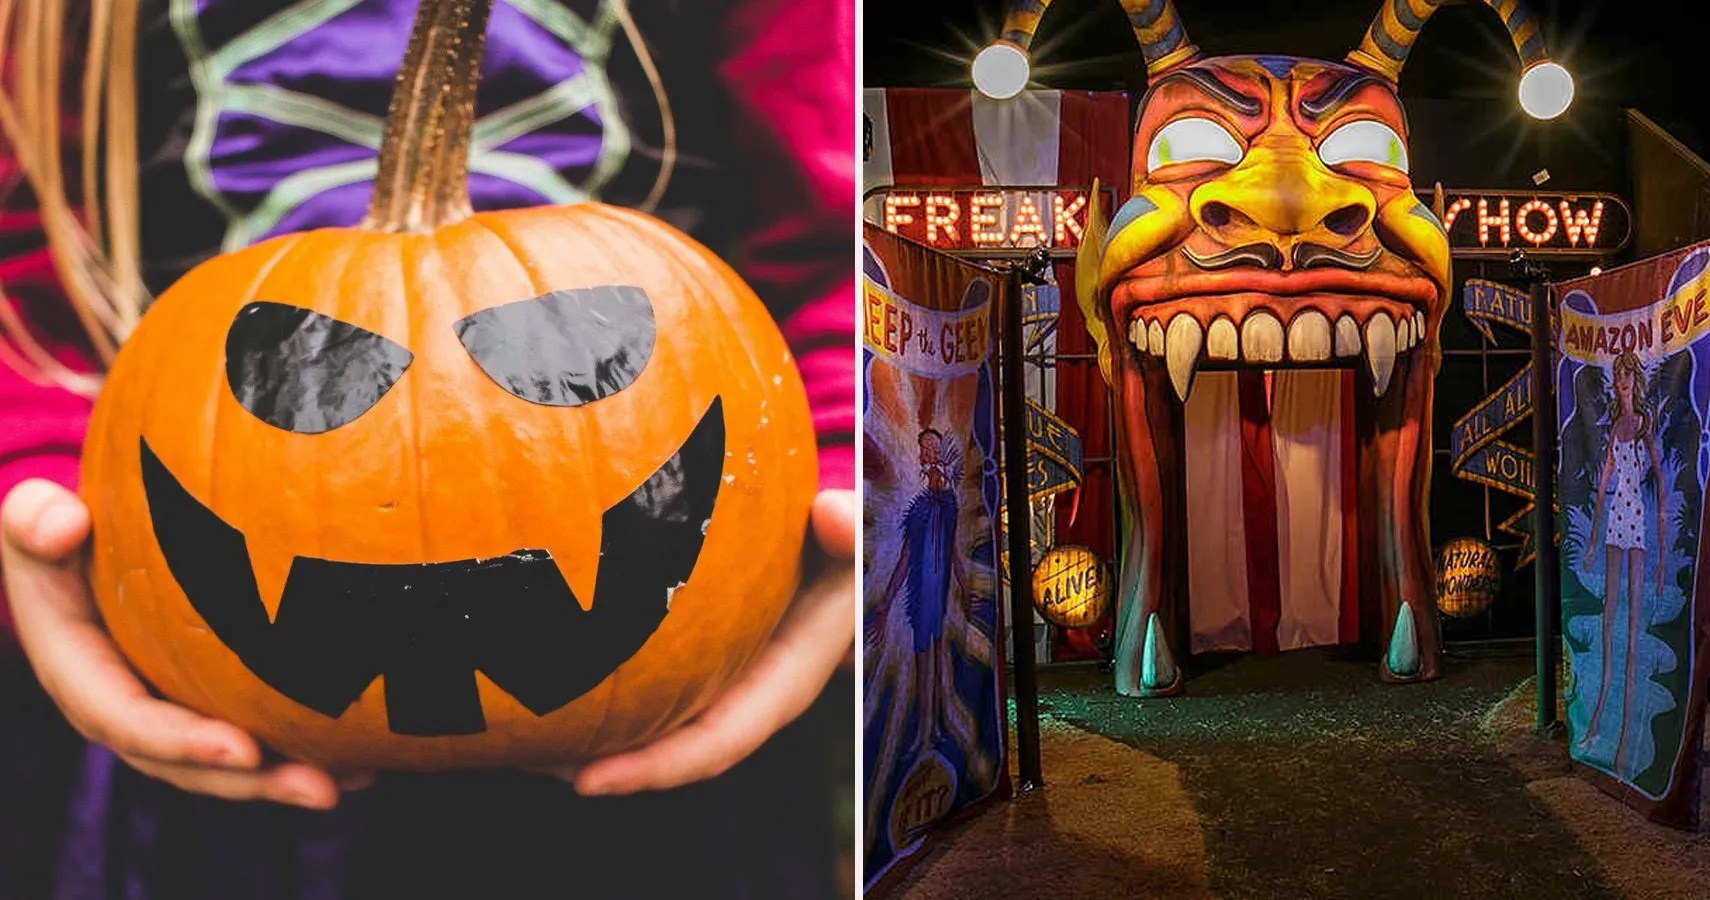 10 Fun Ways To Celebrate Halloween With Your Kids That Don